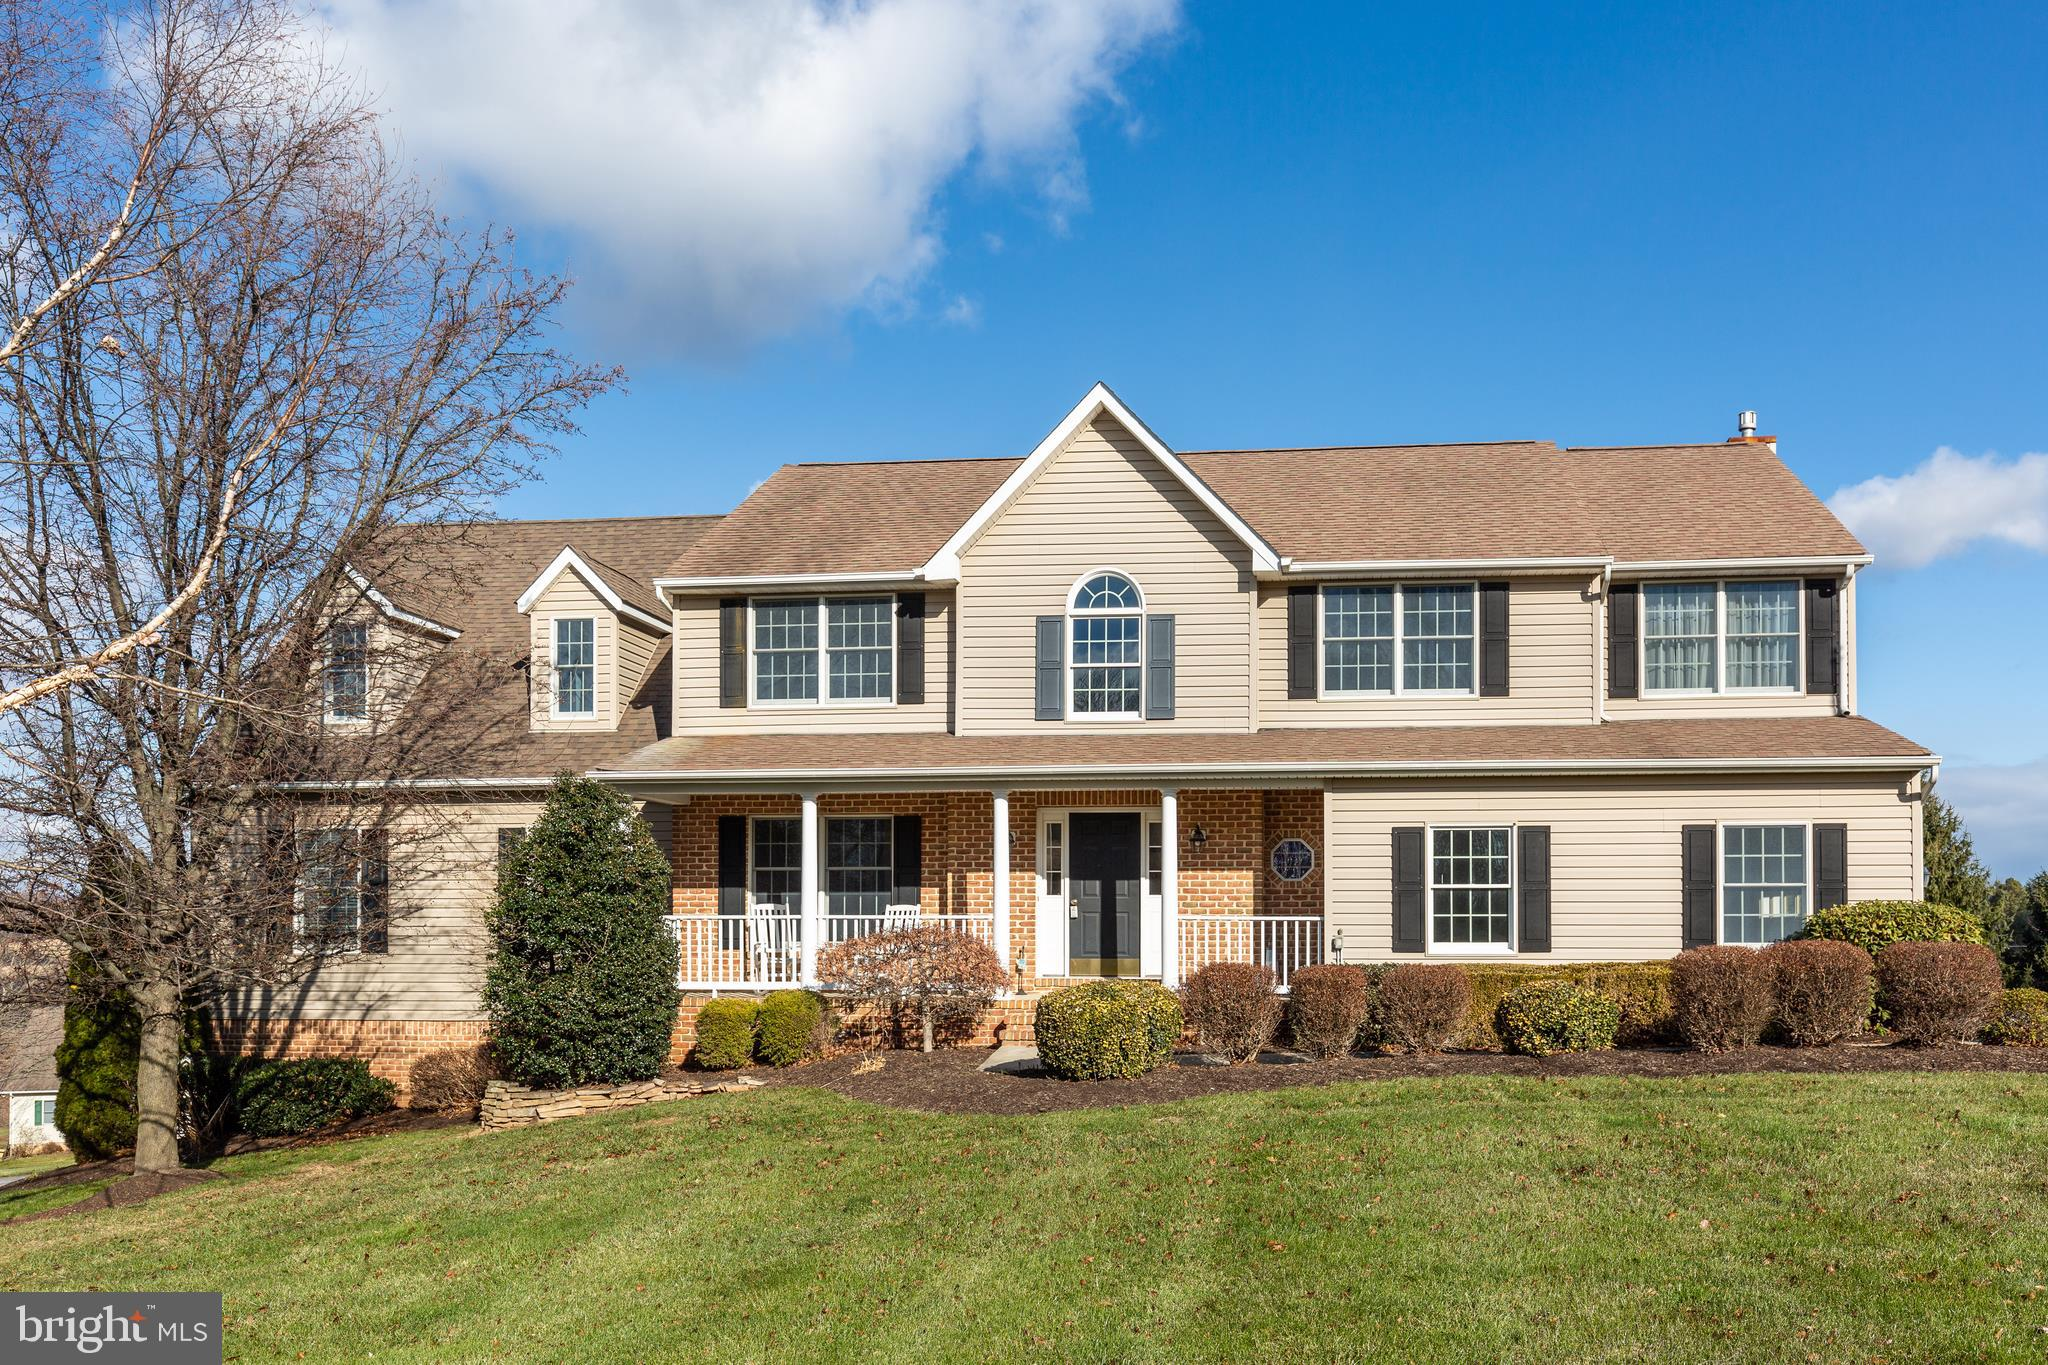 1213 ALLVIEW DRIVE, HAMPSTEAD, MD 21074